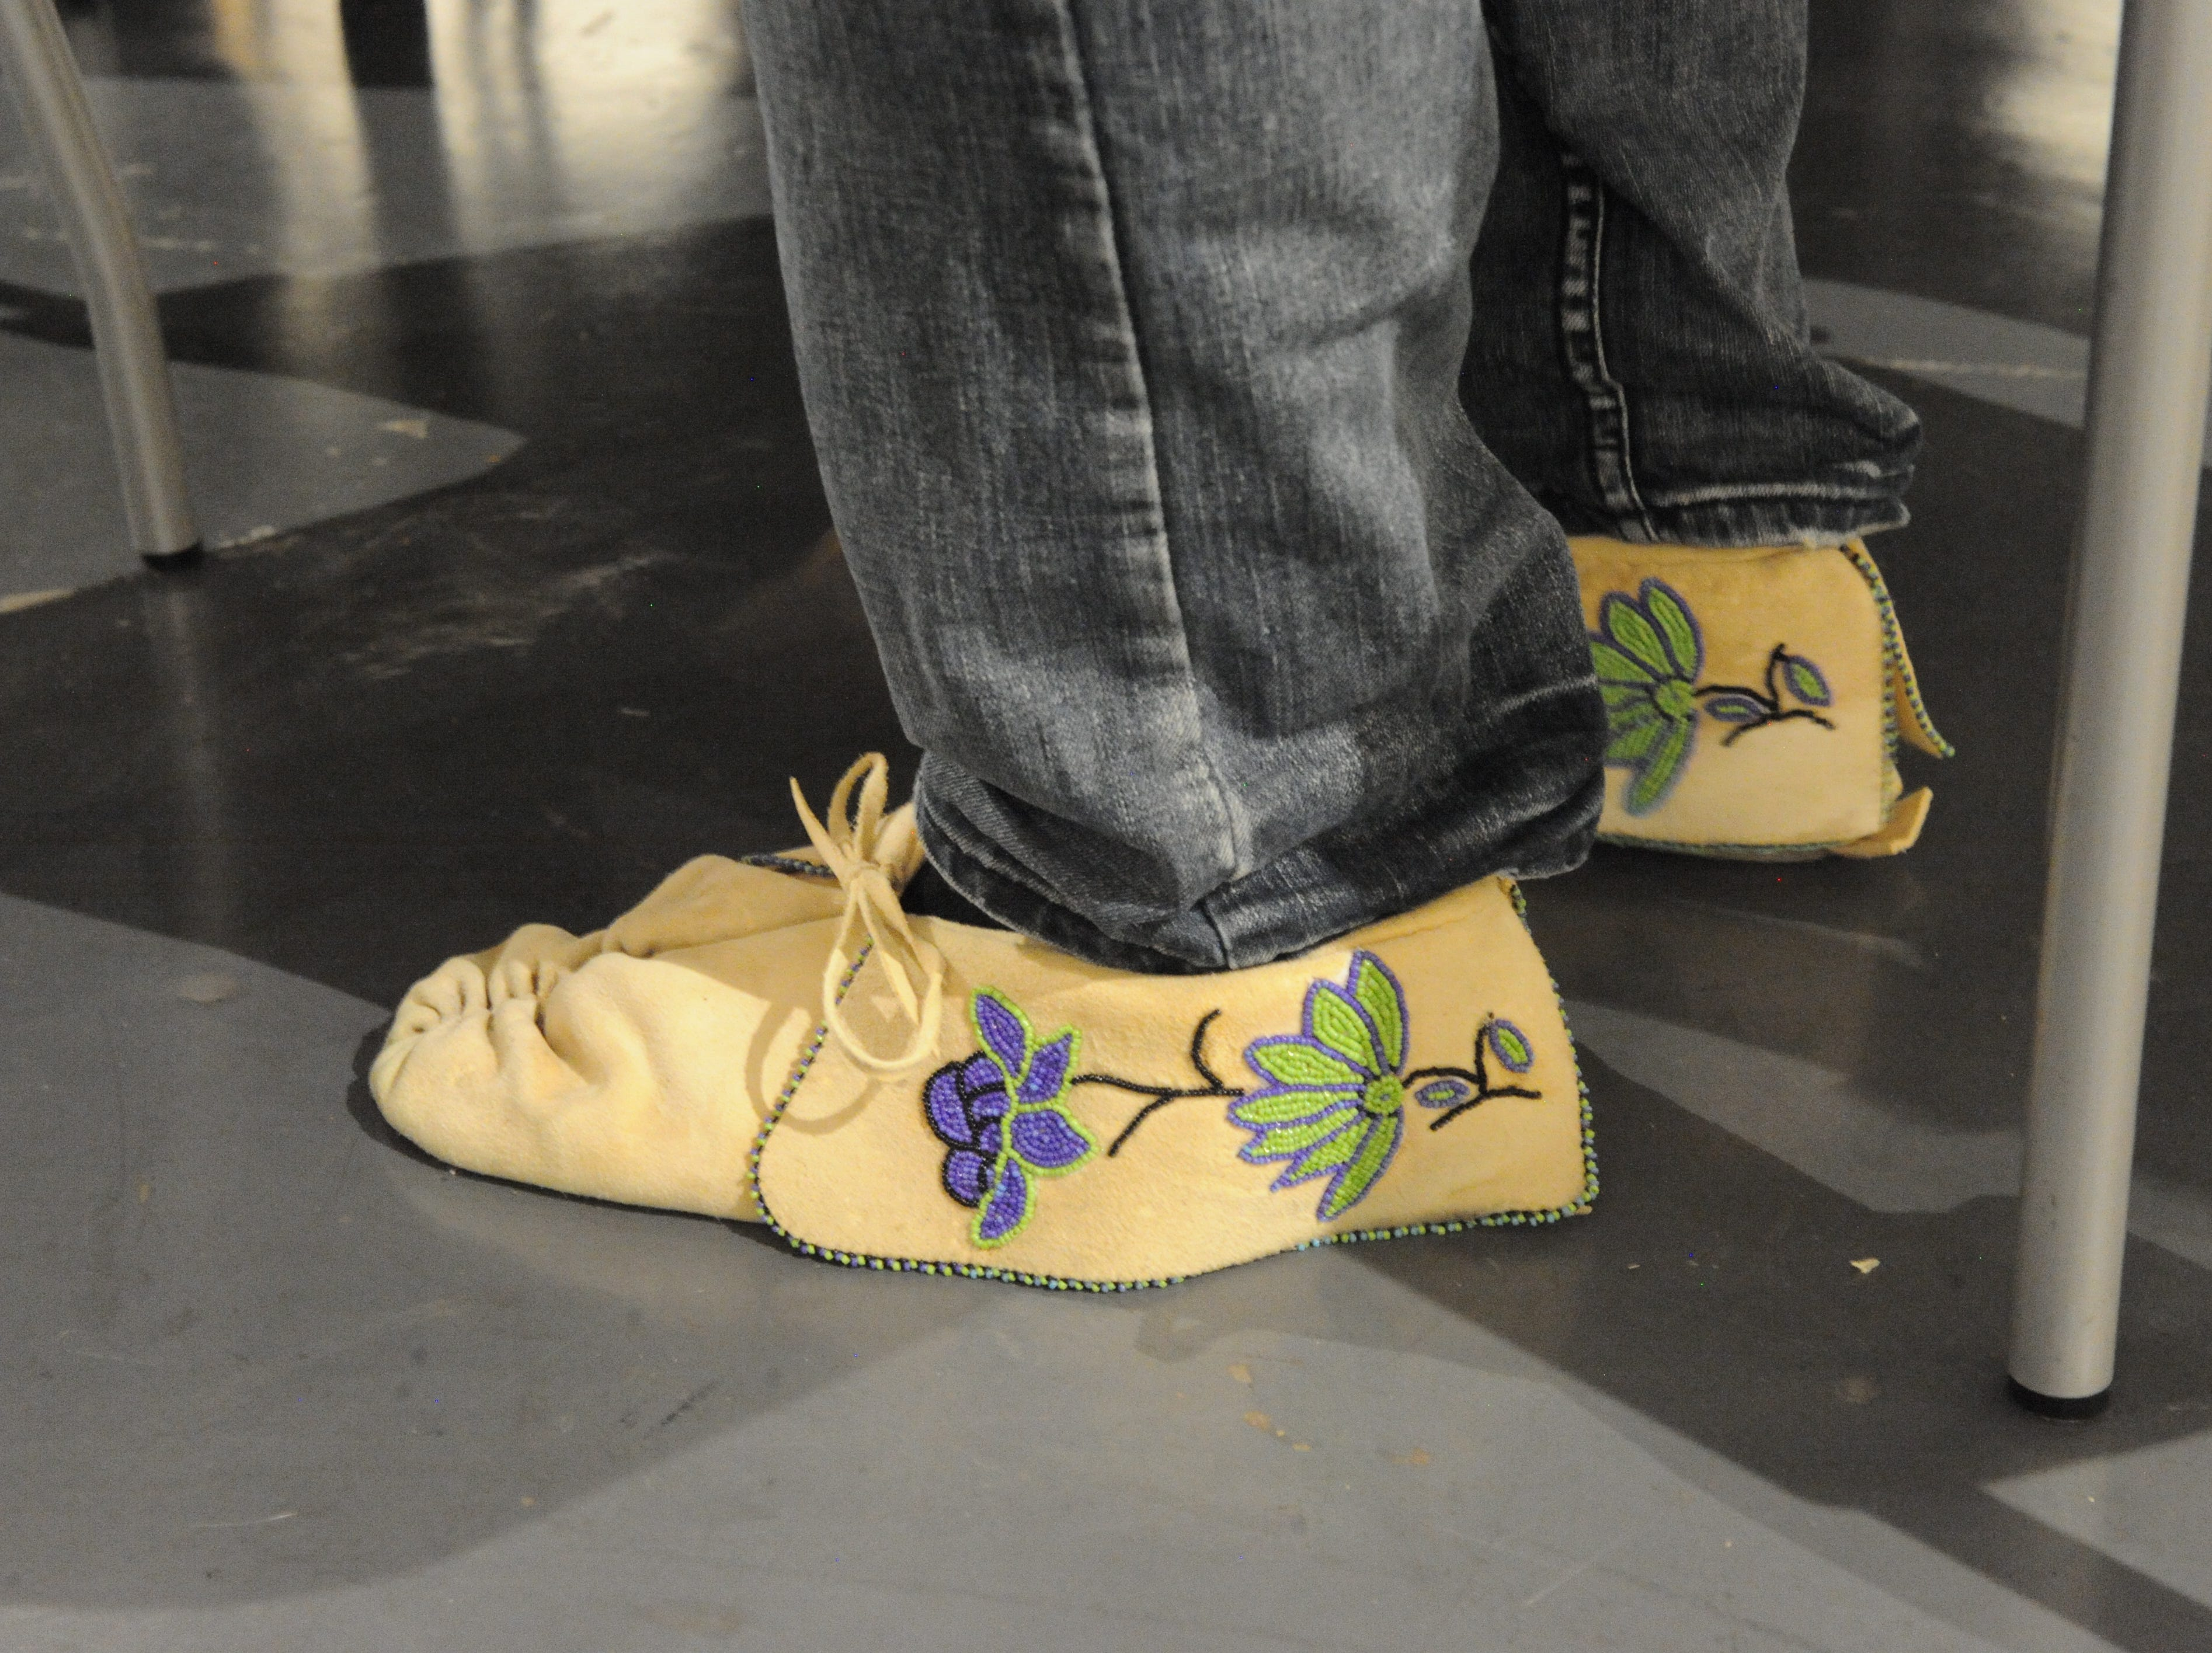 Browning Neddeau's pucker-toe moccasins, with designs of Haskell purple and lime green on the fold.